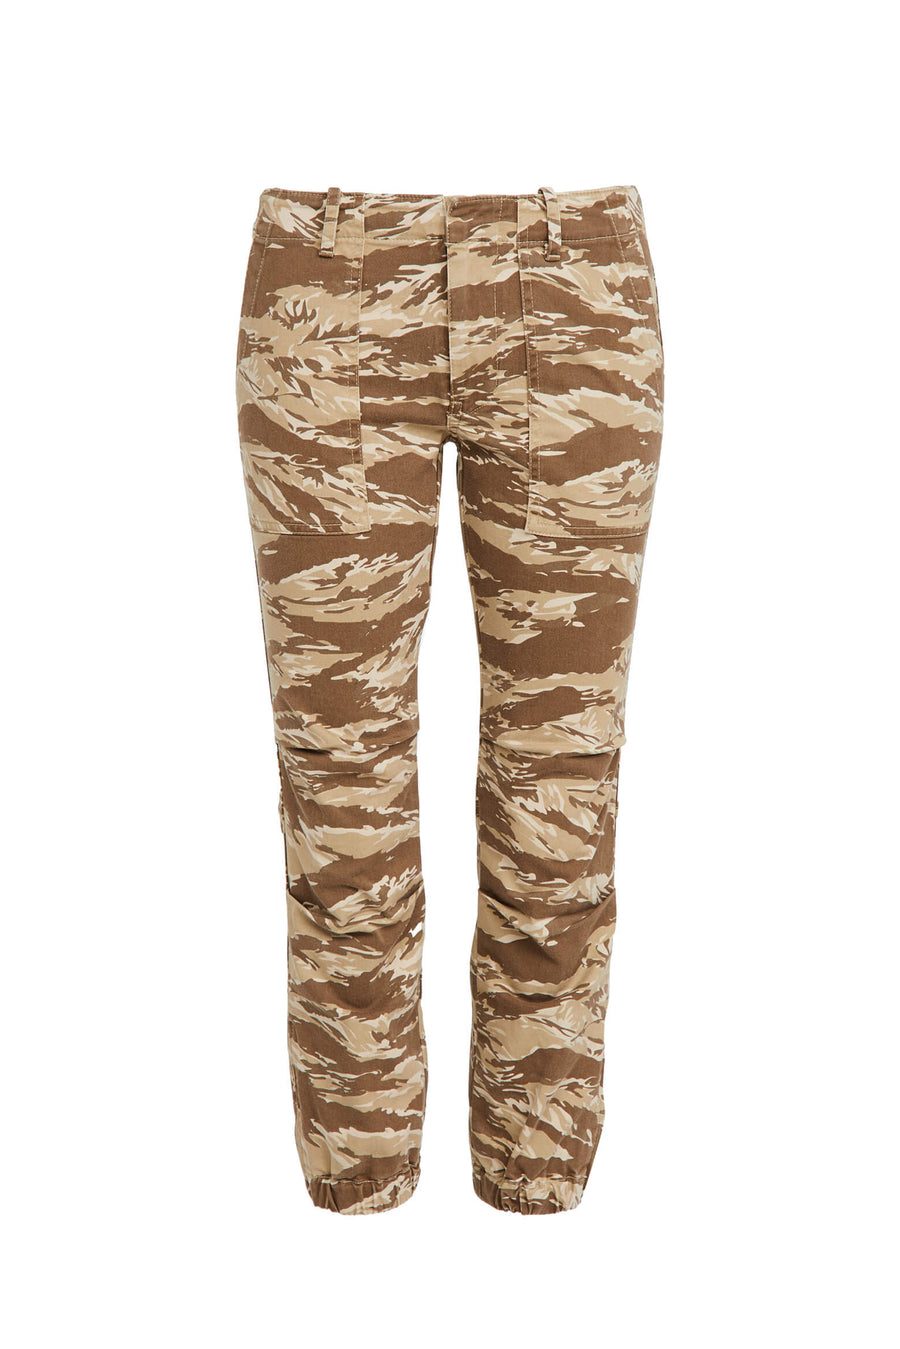 Nili Lotan Cropped French Military Pant from The New Trend